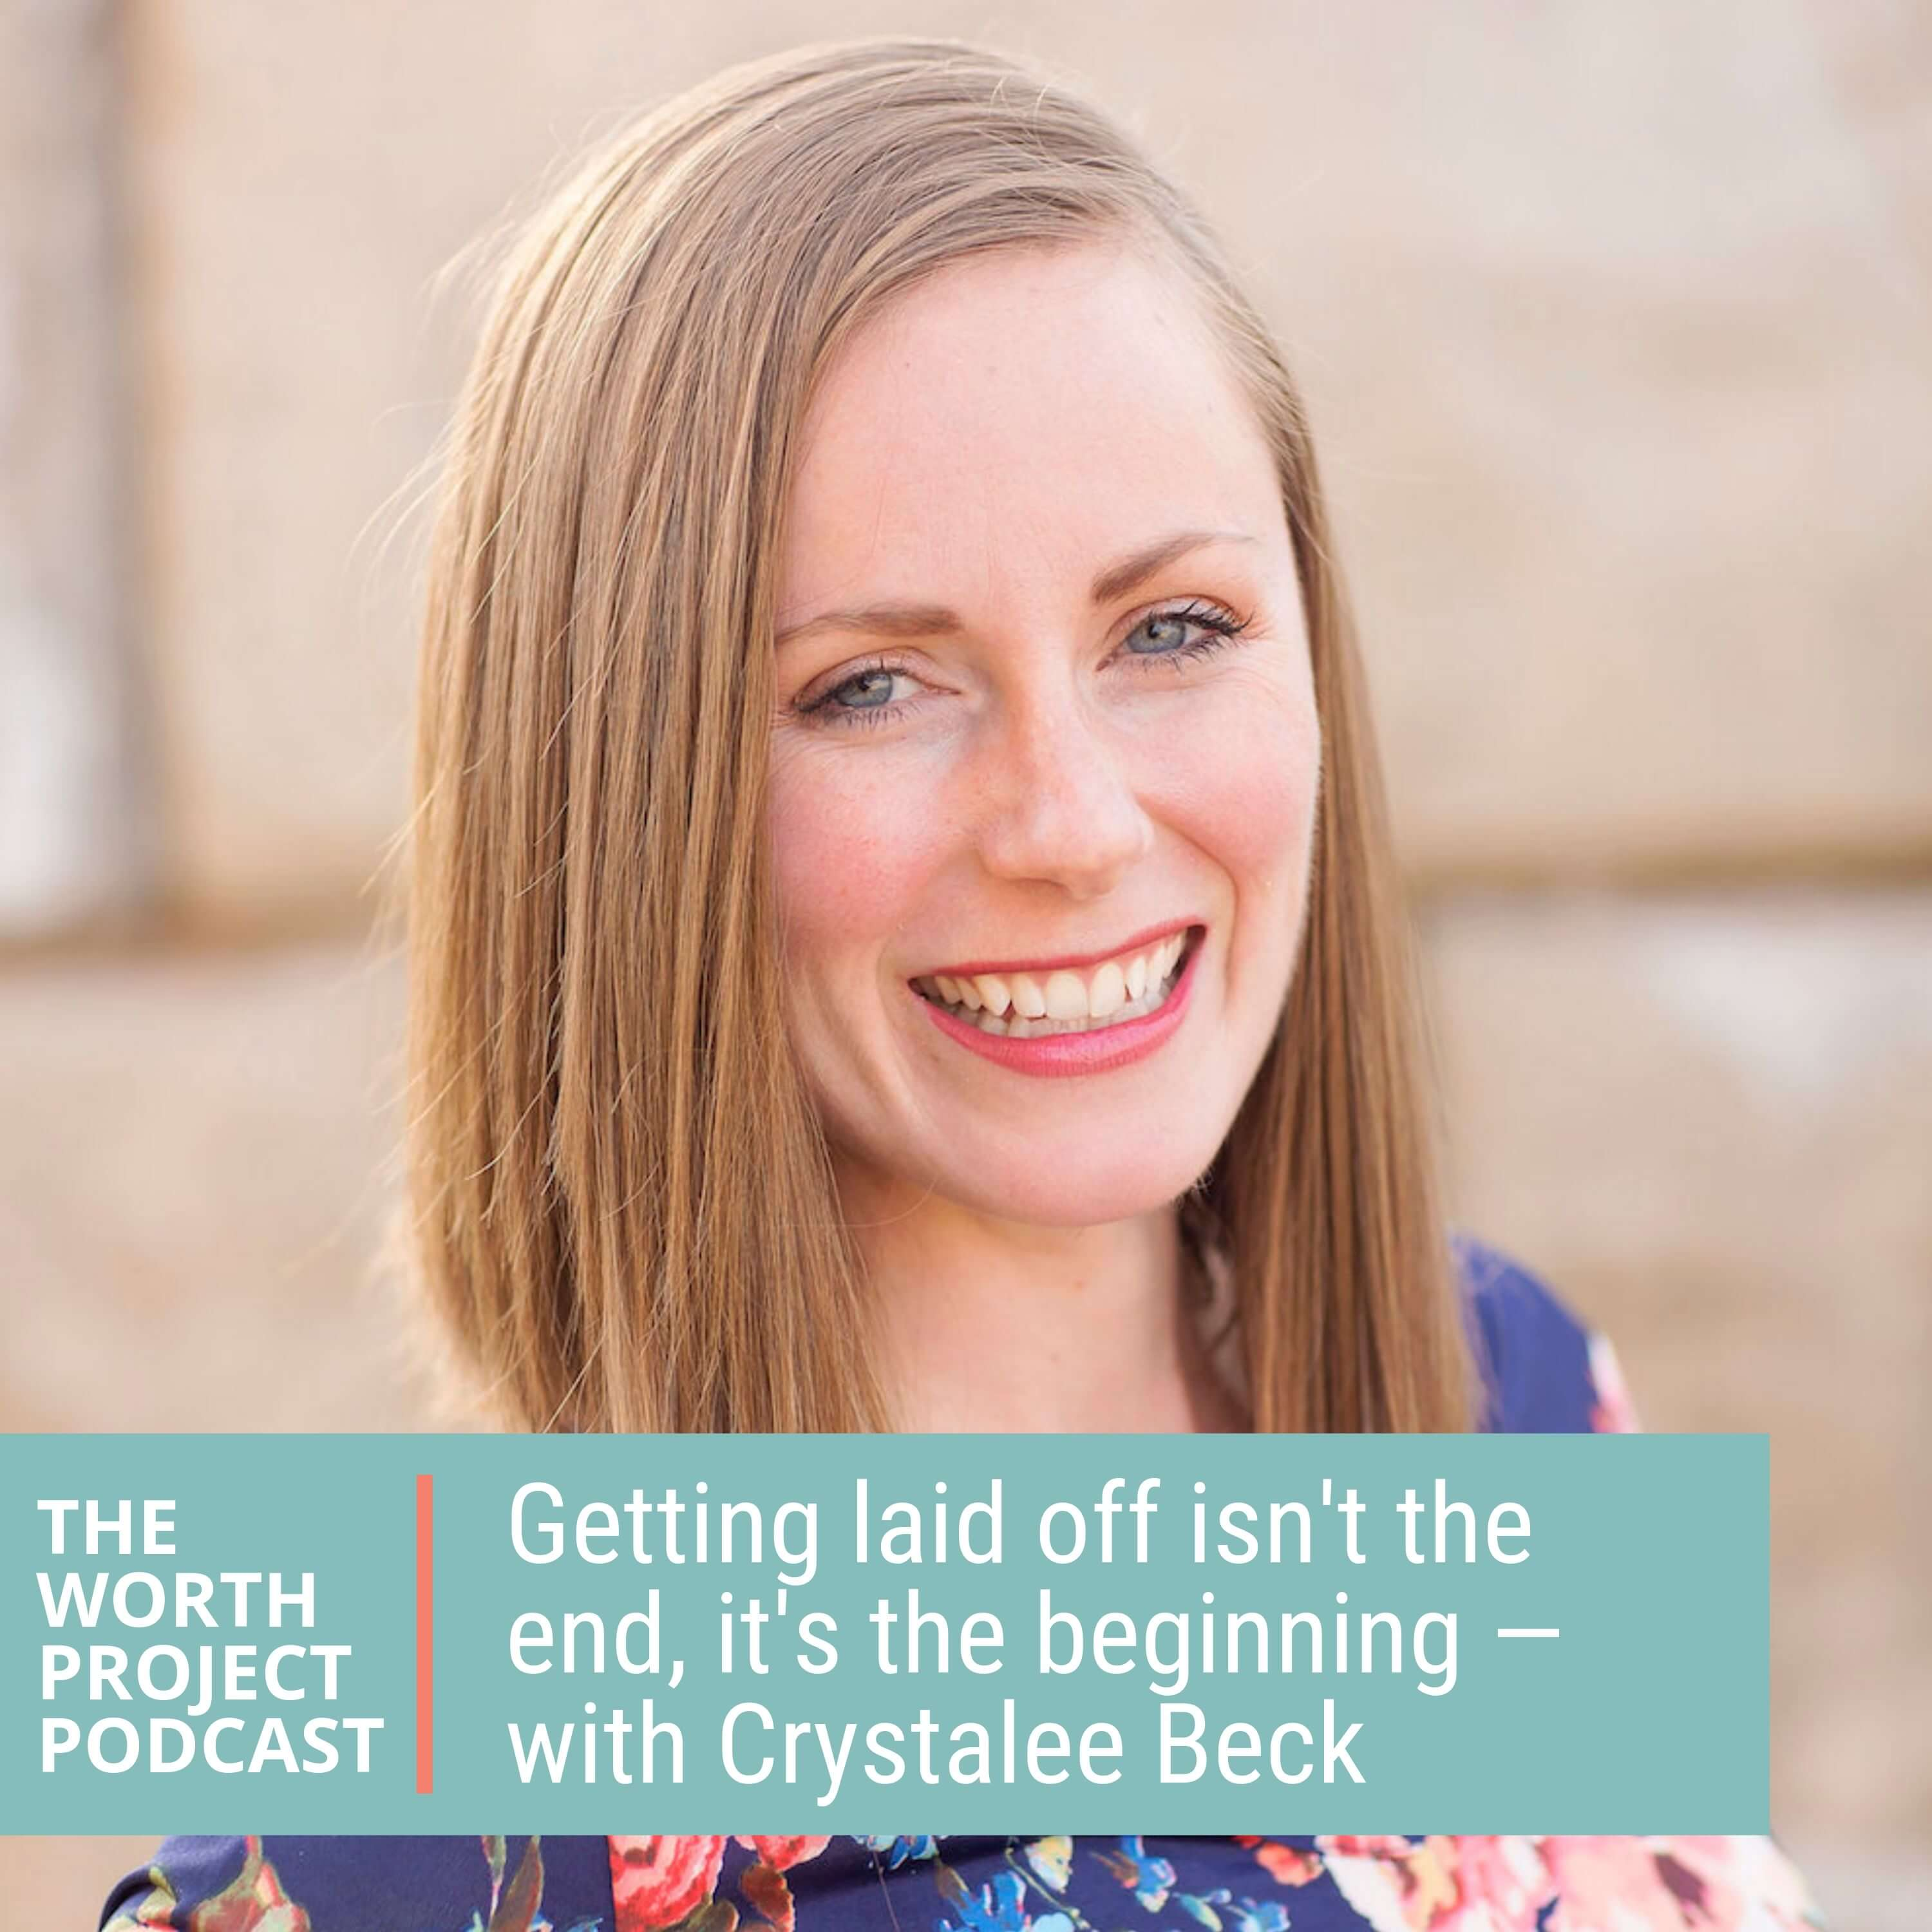 Episode 16: Why getting laid off isn't the end of your story